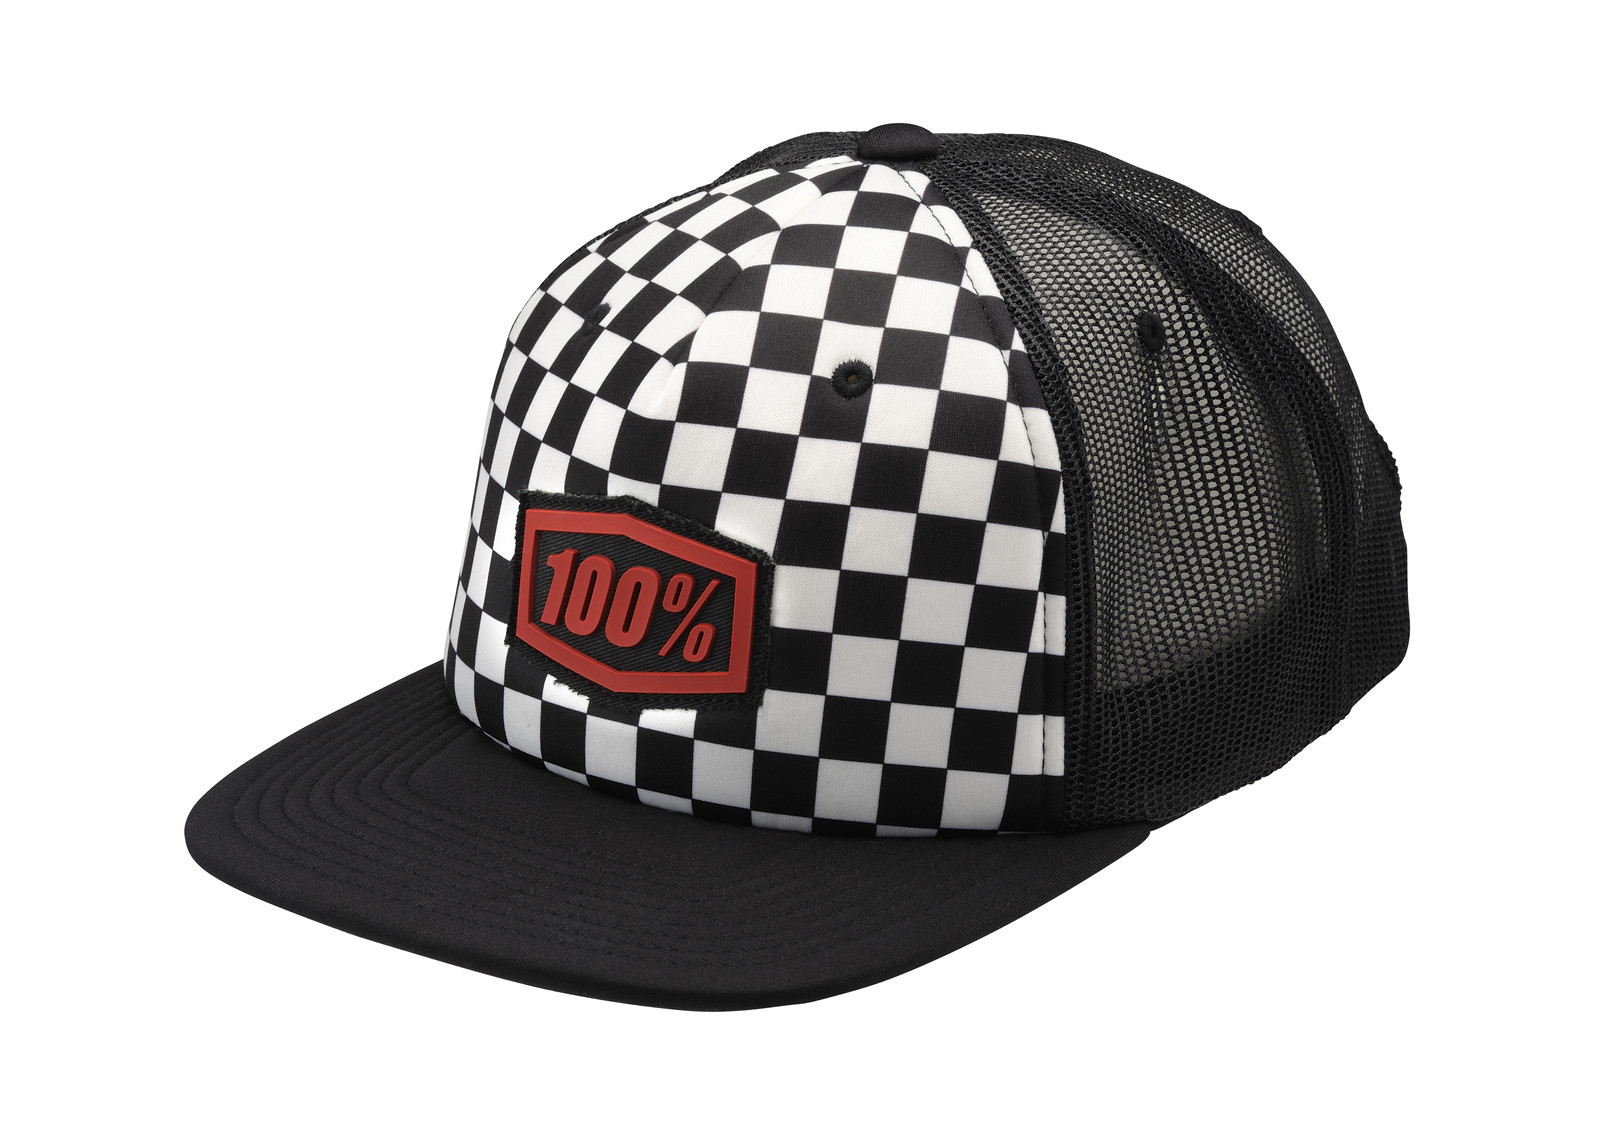 100% Checkers Hat - 100percent - Motocross Pictures - Vital MX